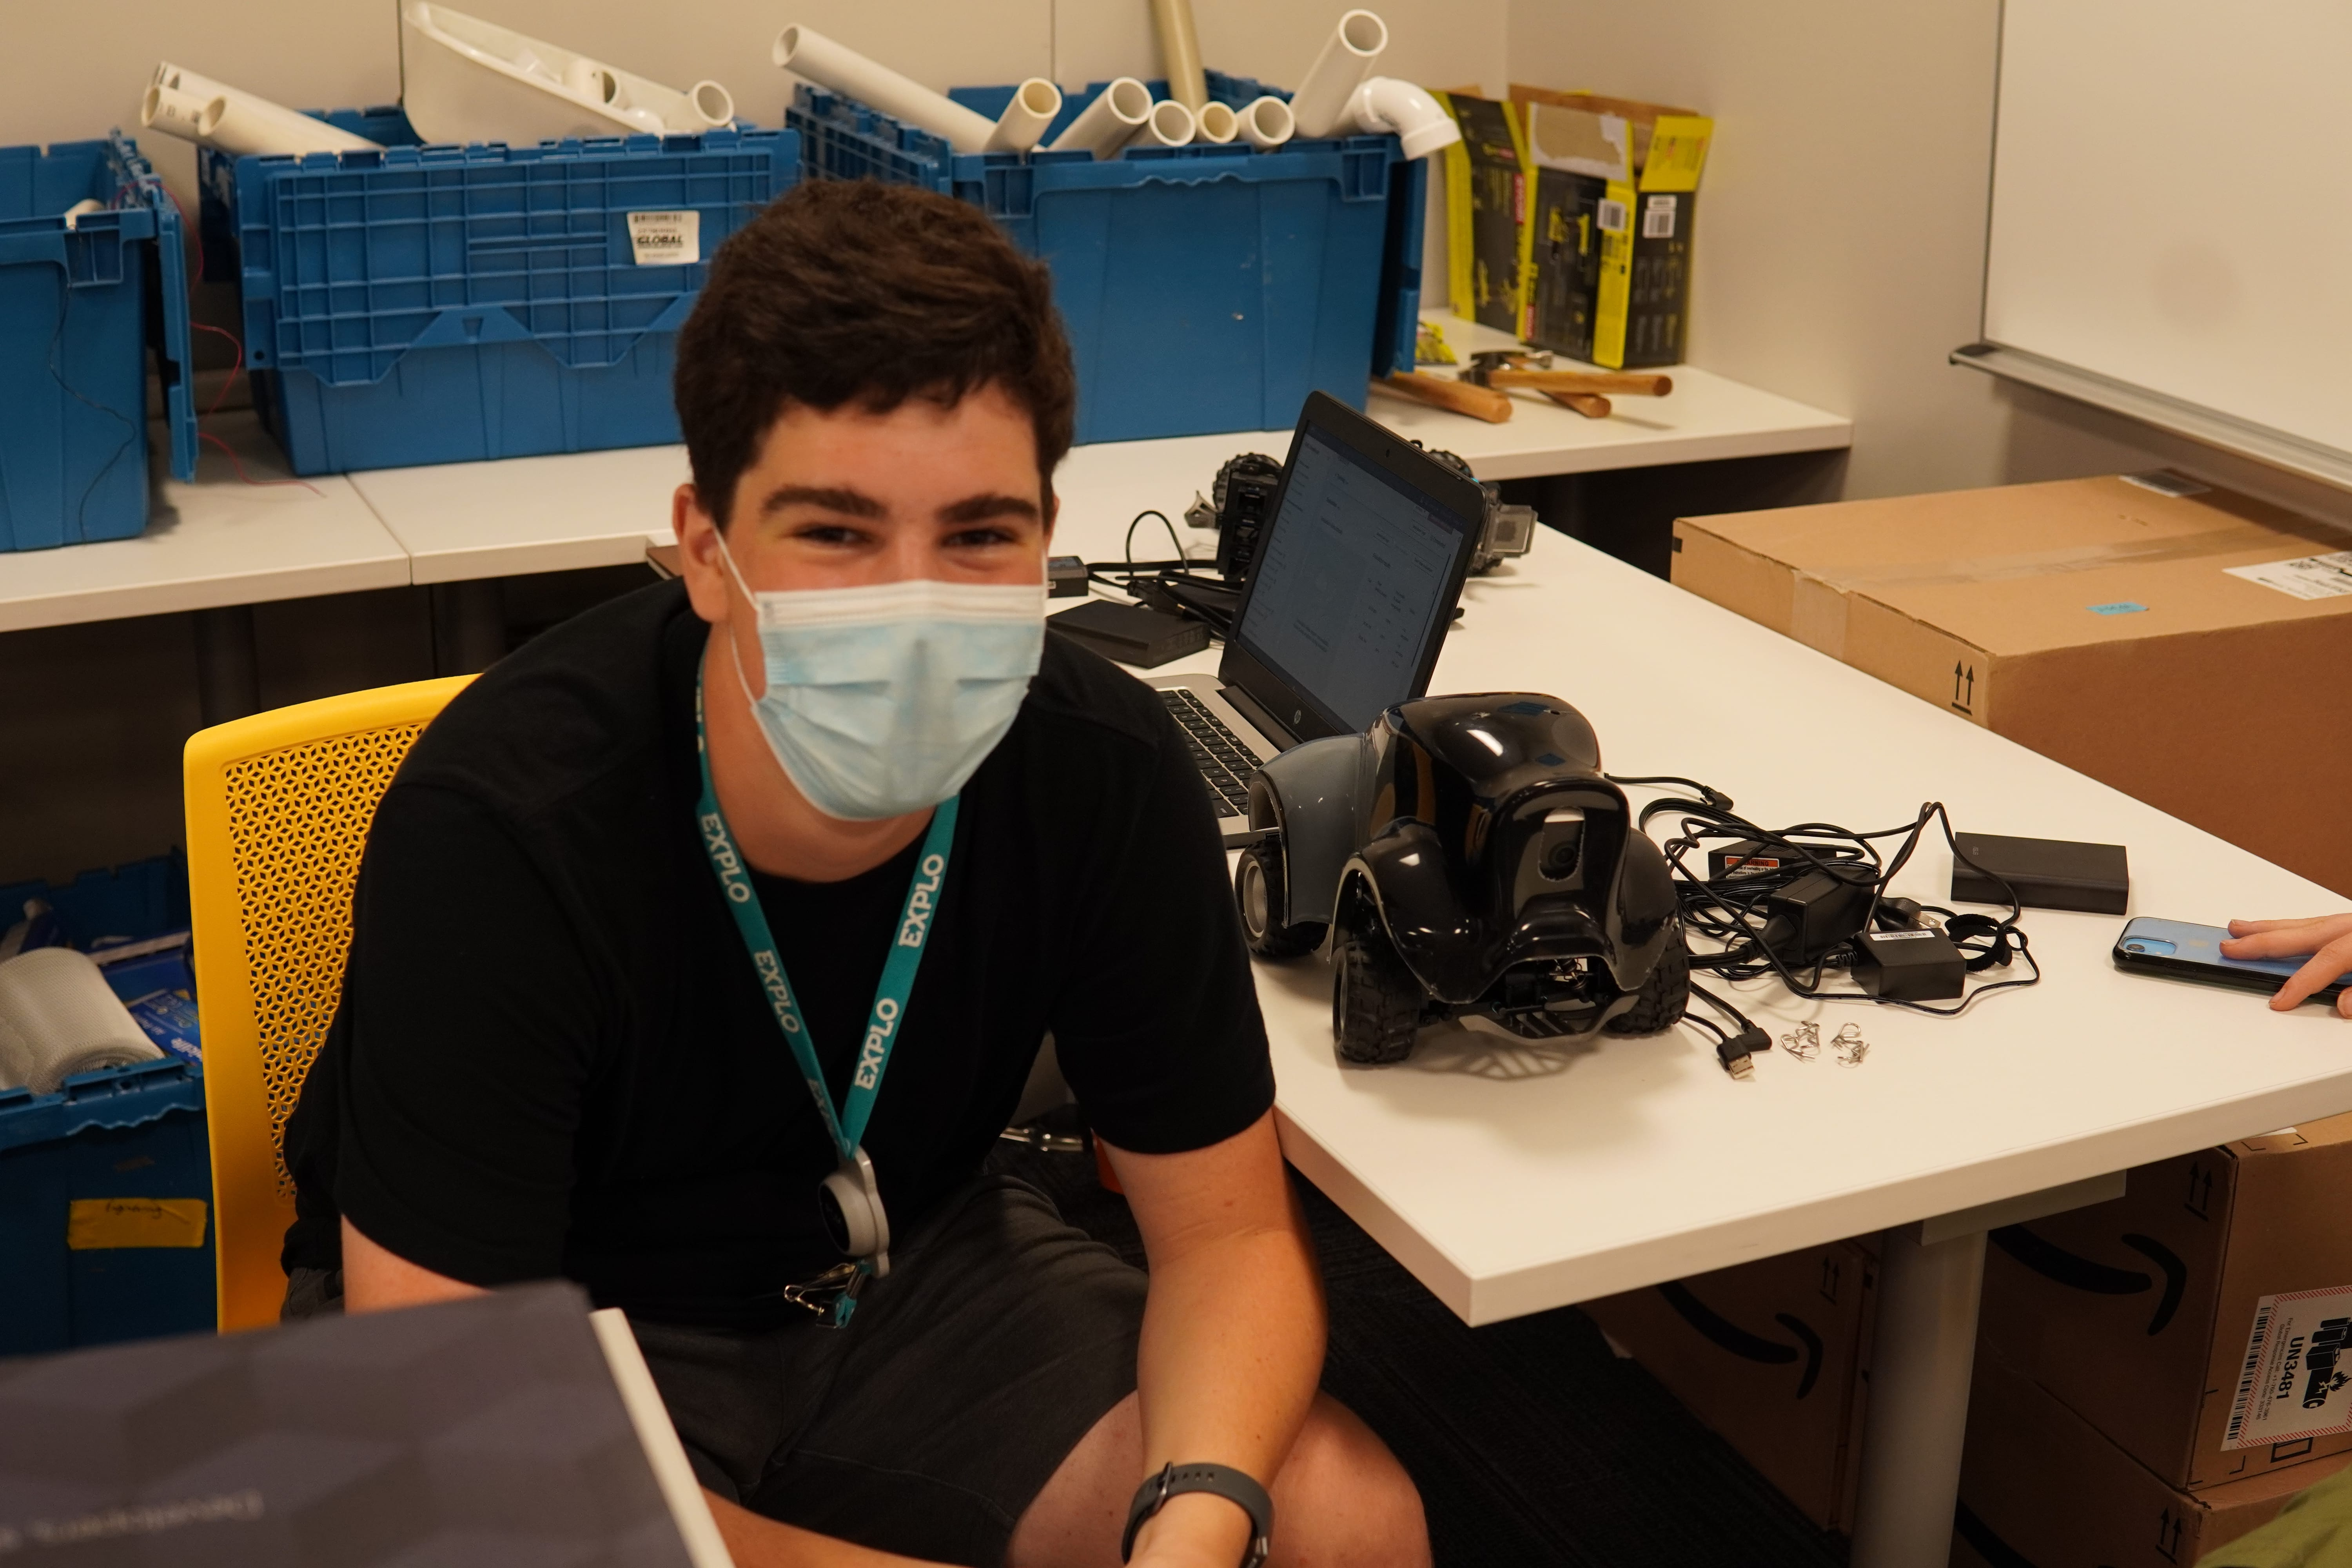 A student smiles under their mask as they sit next to their deconstructed car and computer